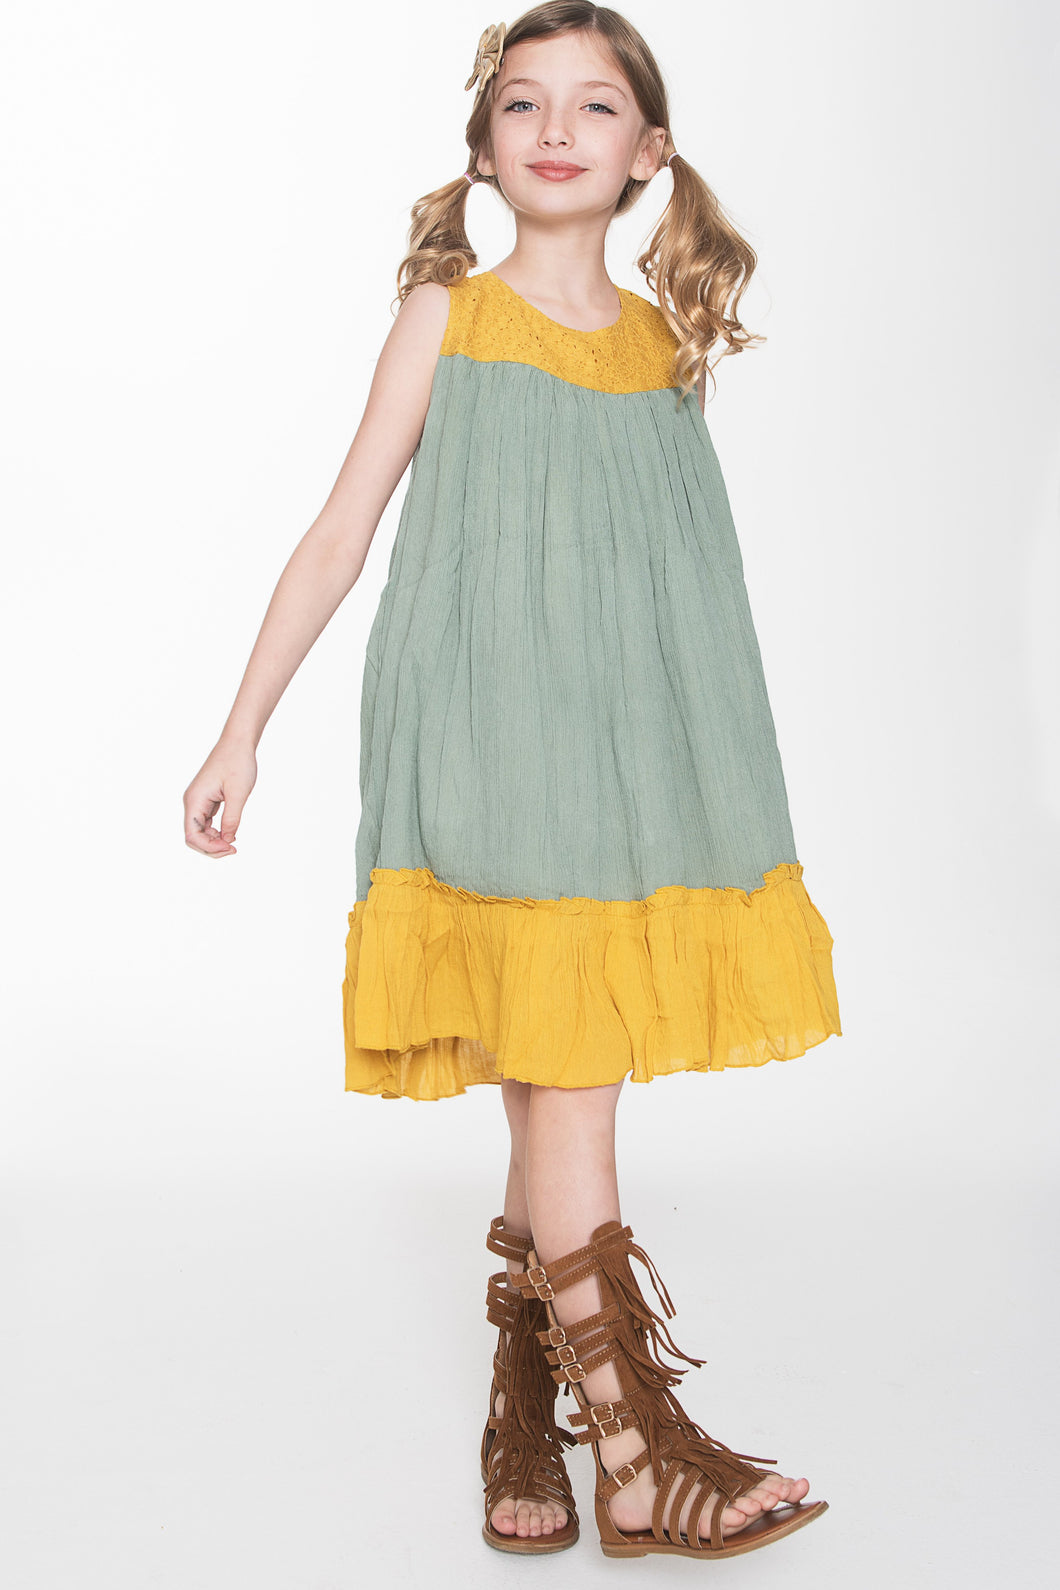 Yellow and Muddy Green Dress - Kids Clothing, Dress - Girls Dress, Yo Baby Online - Yo Baby